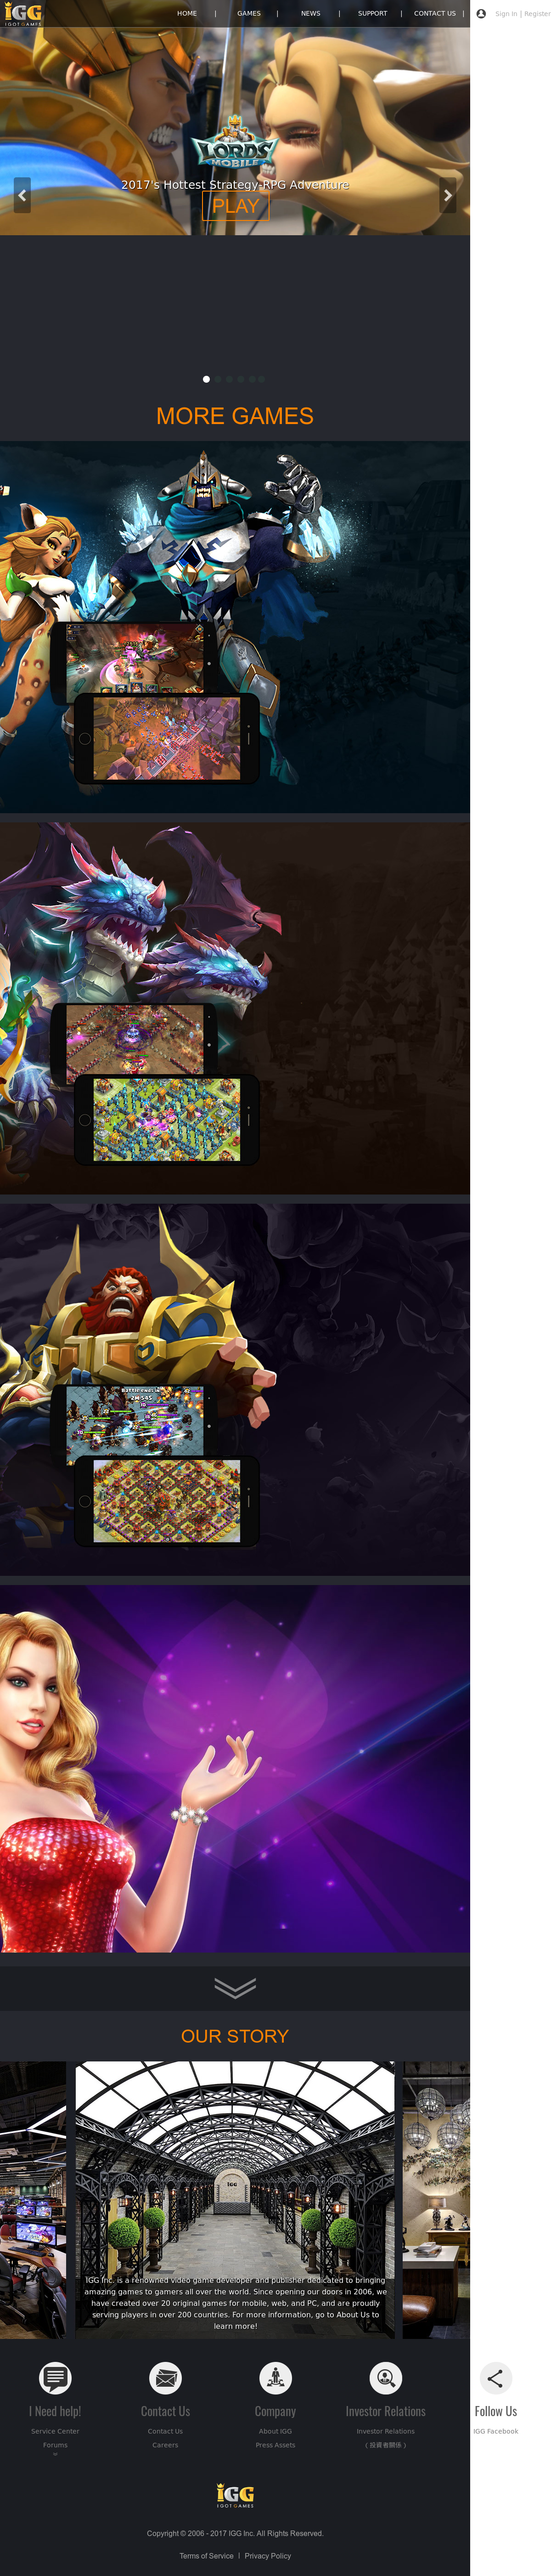 kingdoms and castles free download igg